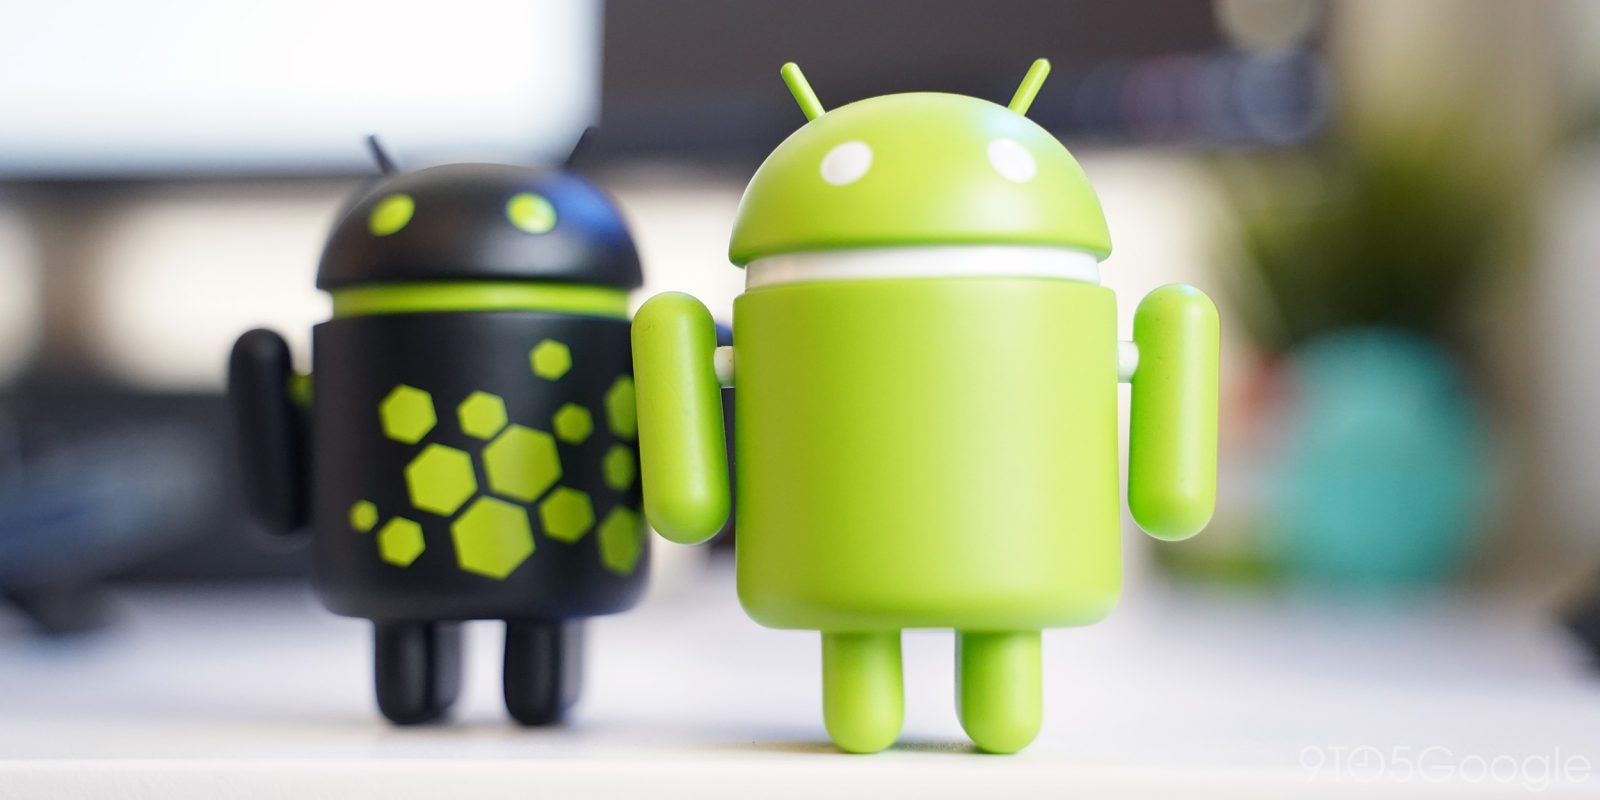 Some users report Android notification issues w/ Bluetooth